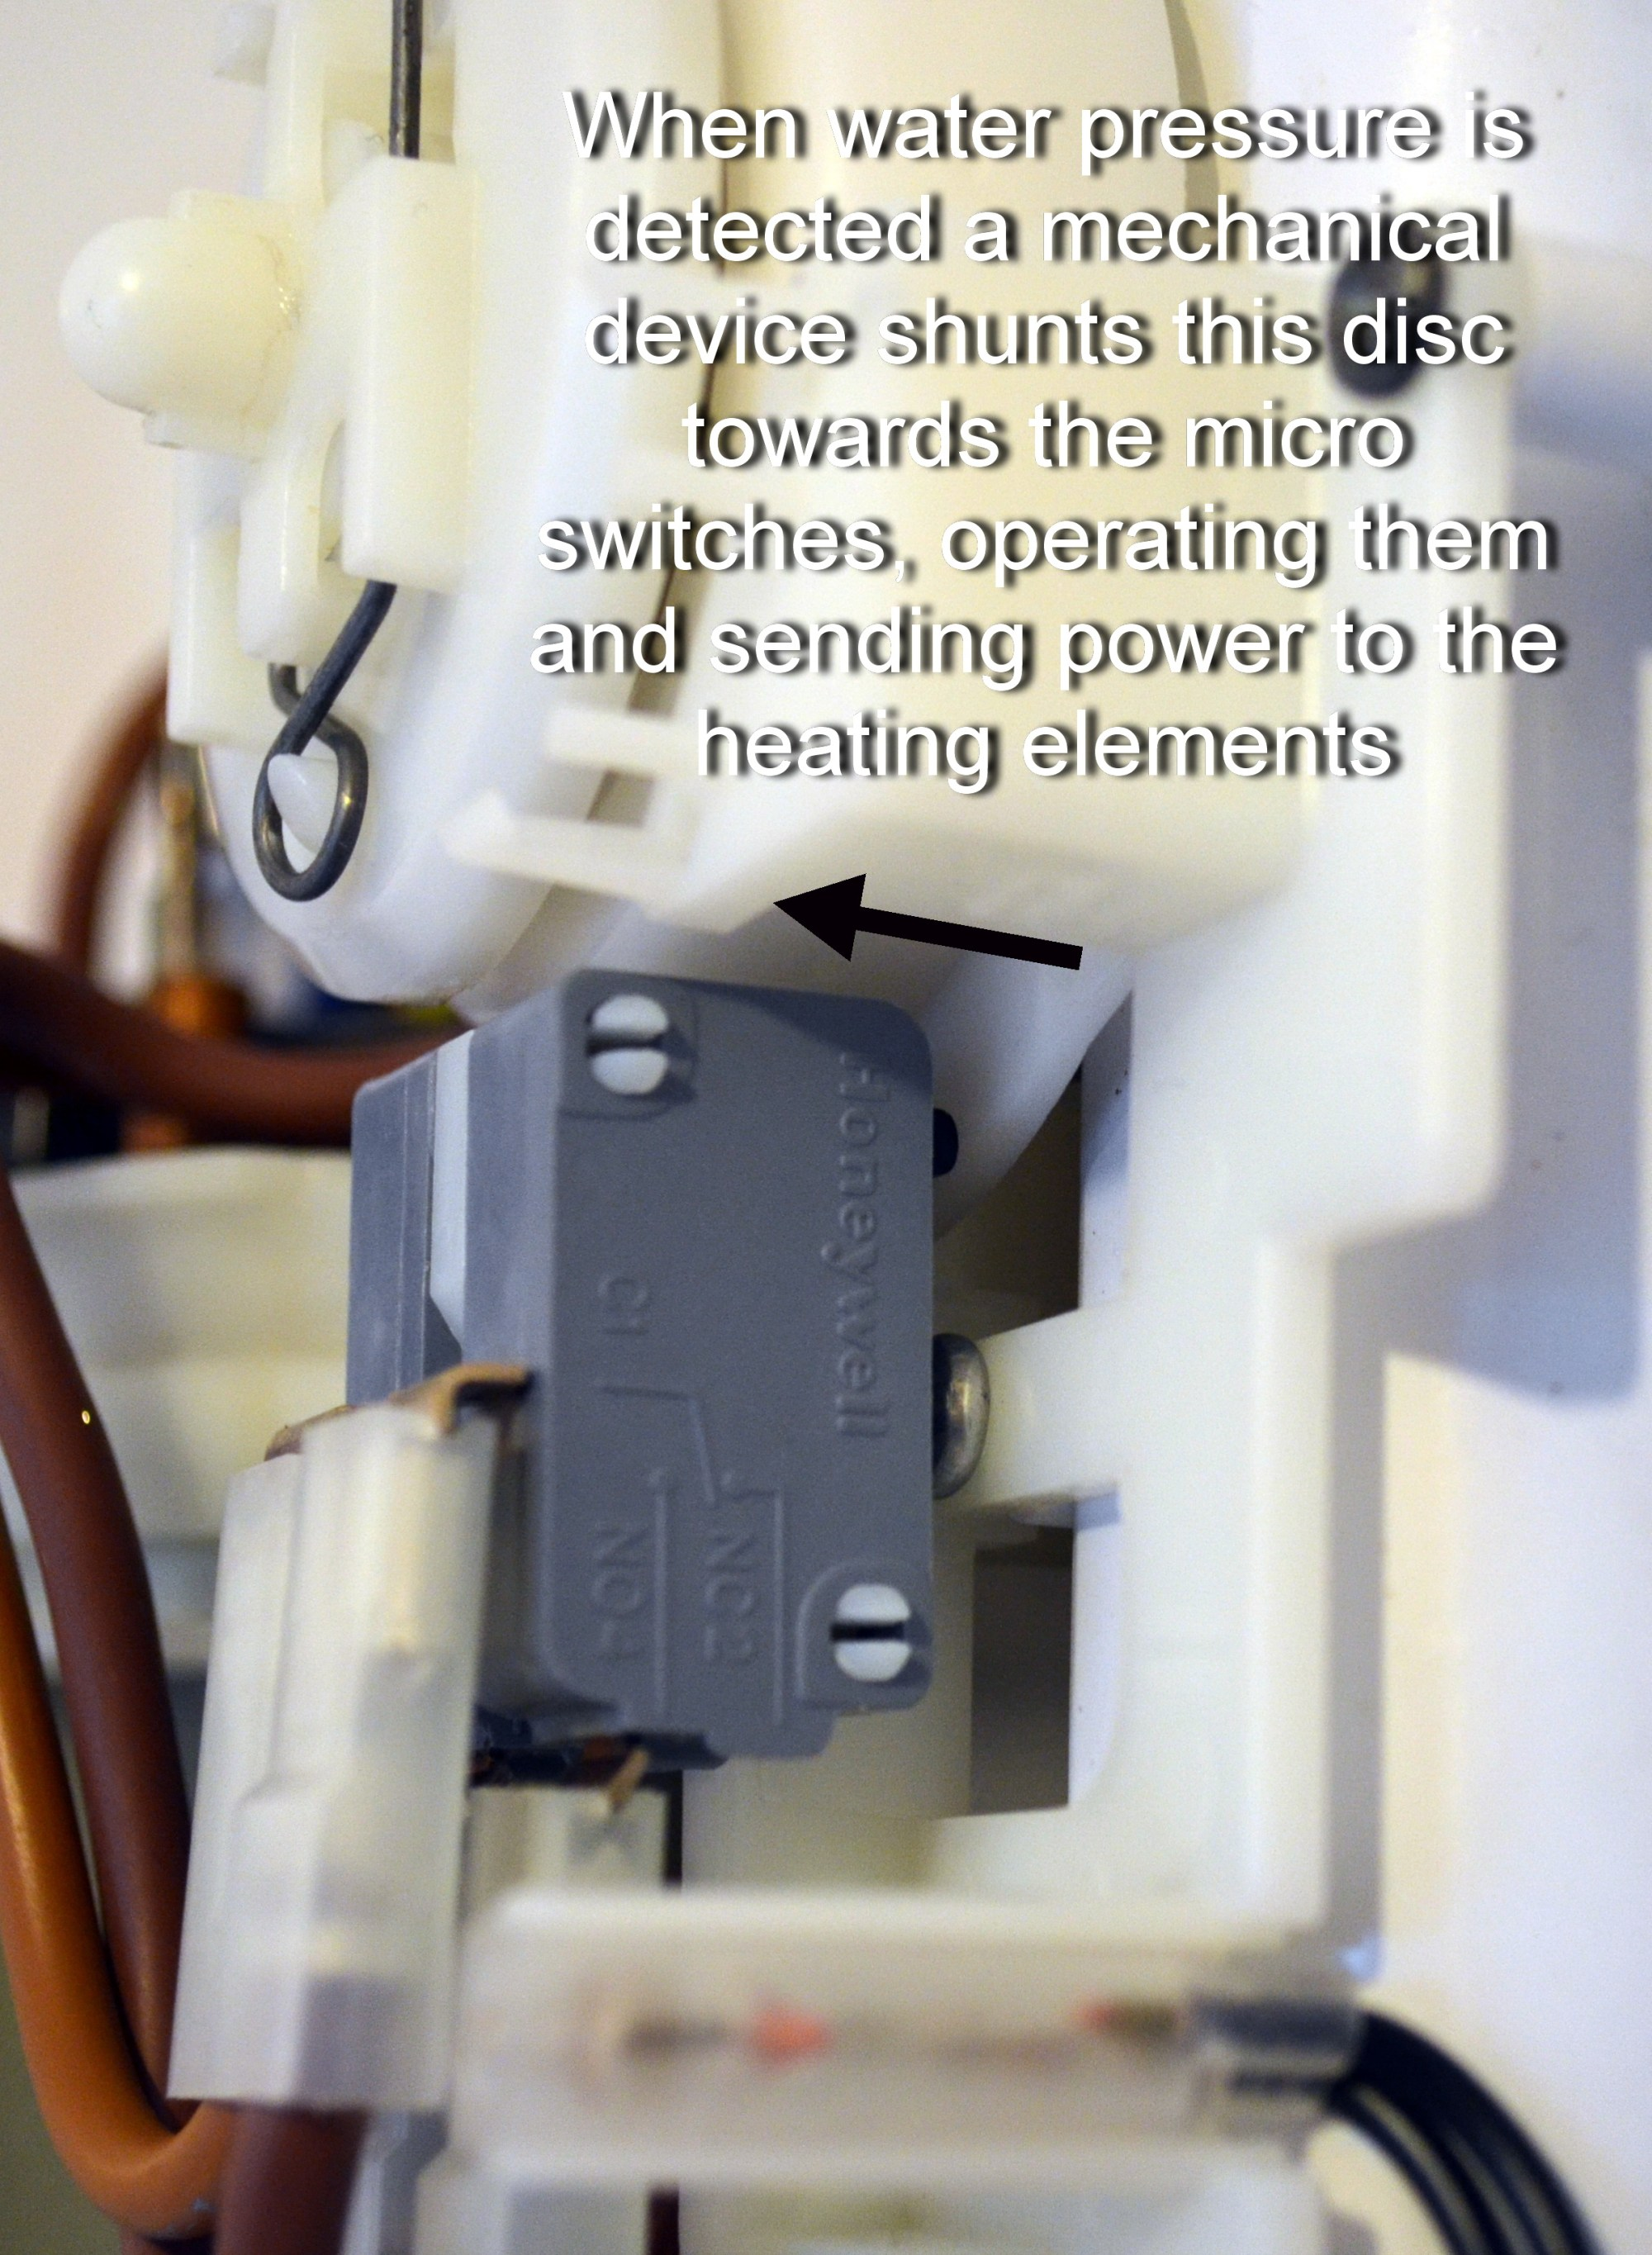 hight resolution of electric shower how micro switches are operated